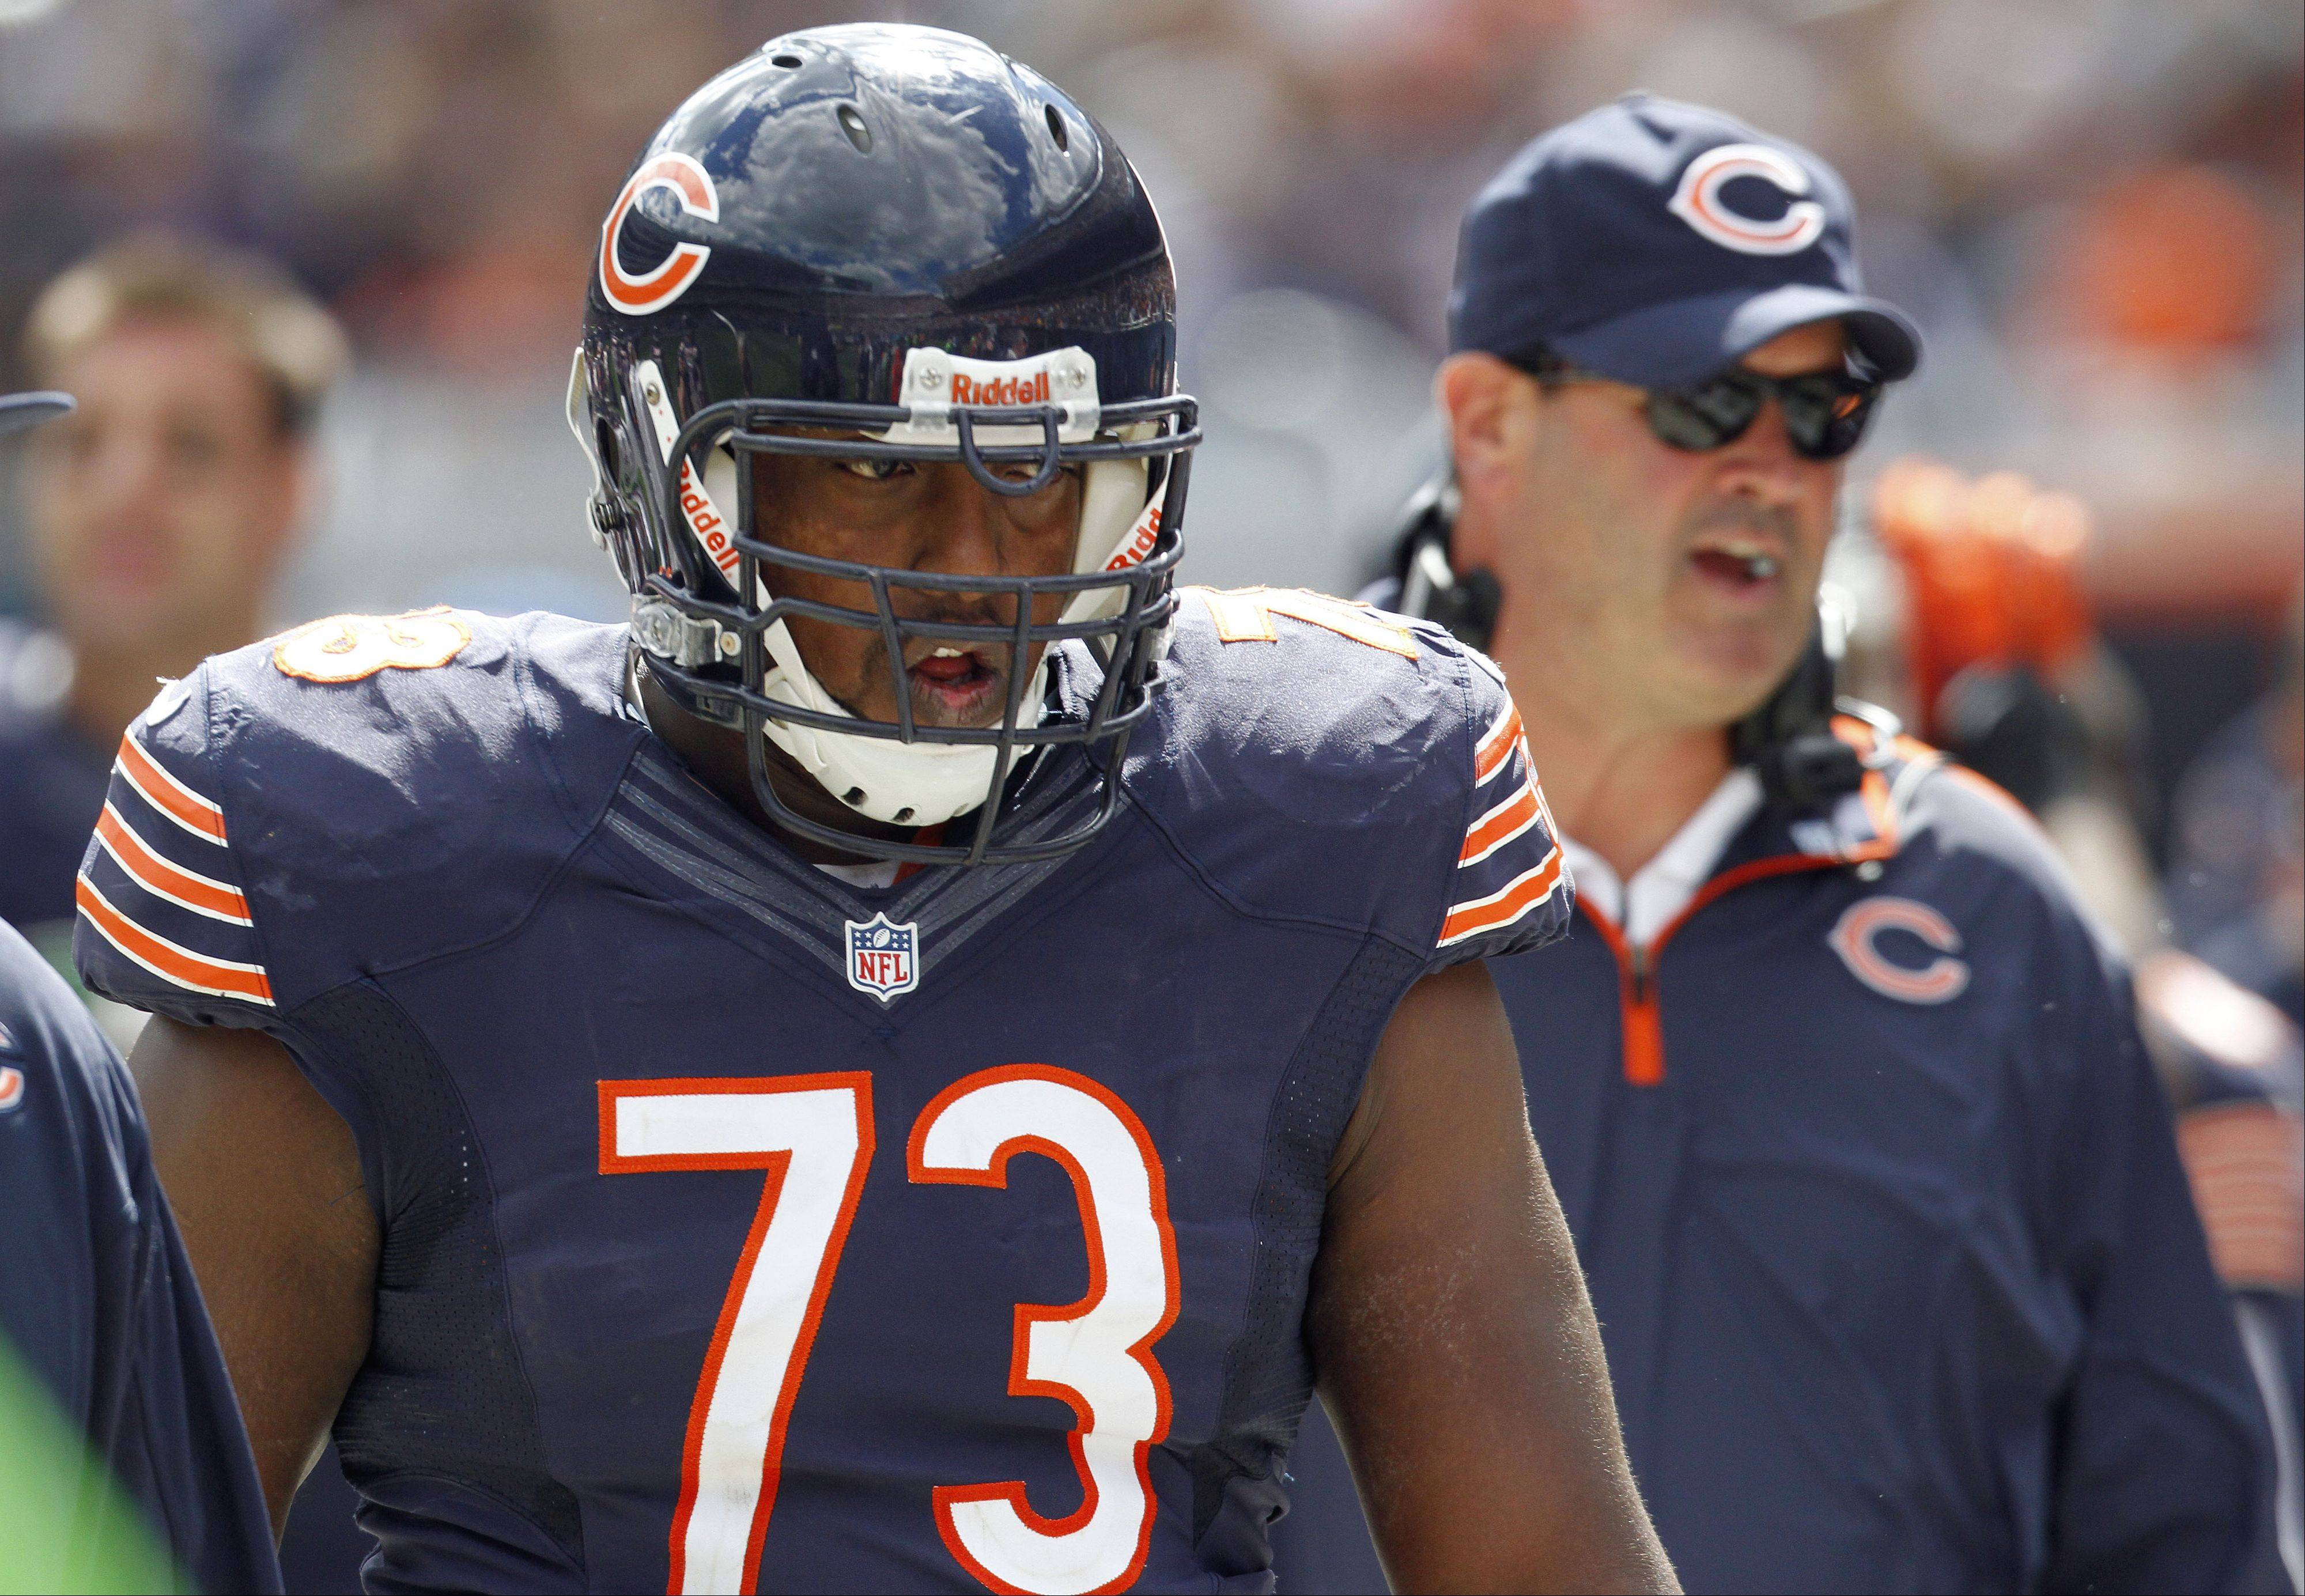 Bears offensive tackle J'Marcus Webb was arrested Sunday night in downstate Pulaski, Ill., on marijuana charges.